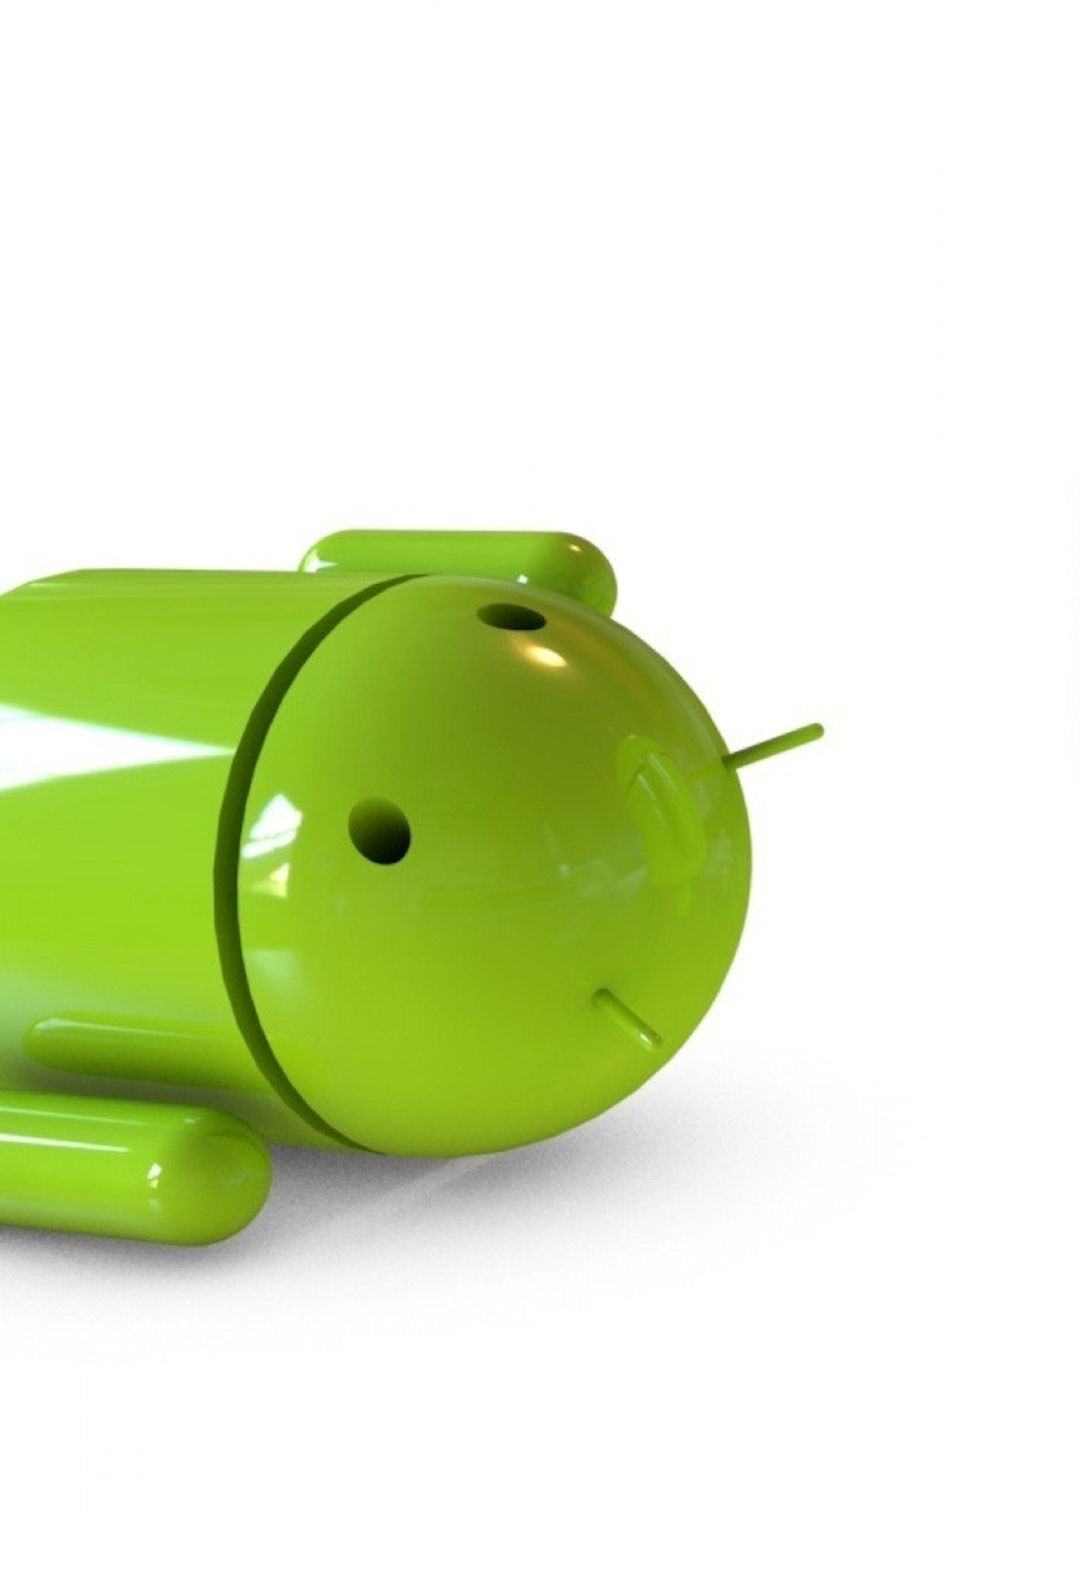 Android caido